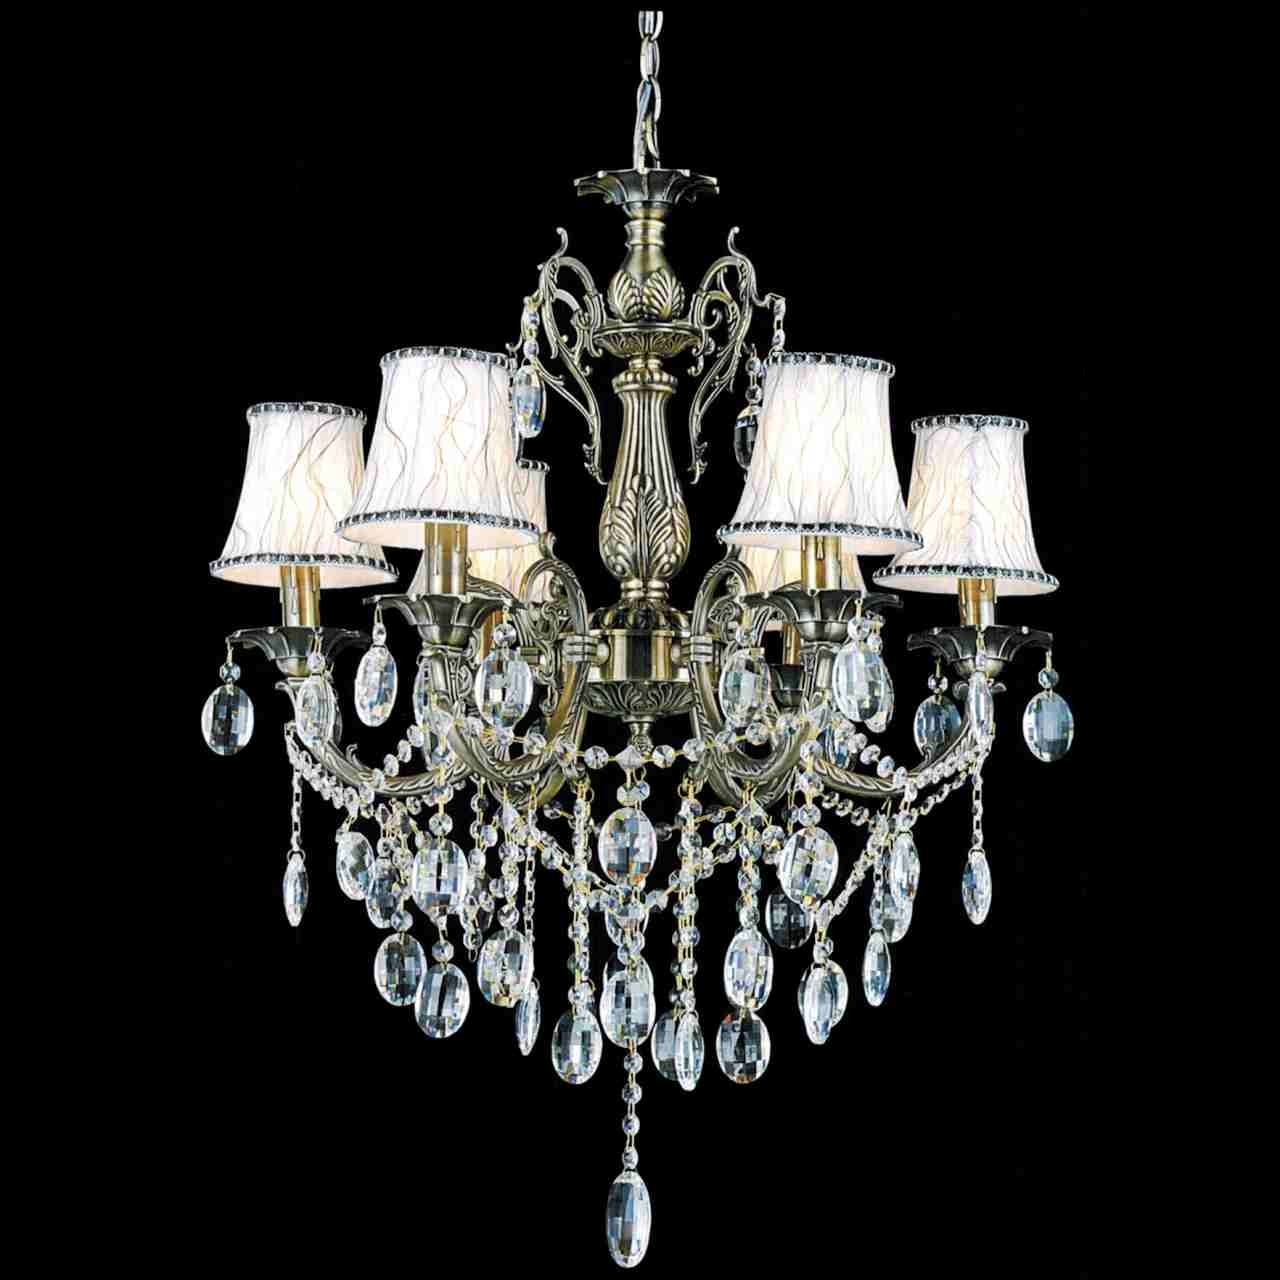 Brass And Crystal Chandeliers With Regard To Fashionable Brizzo Lighting Stores (View 11 of 20)